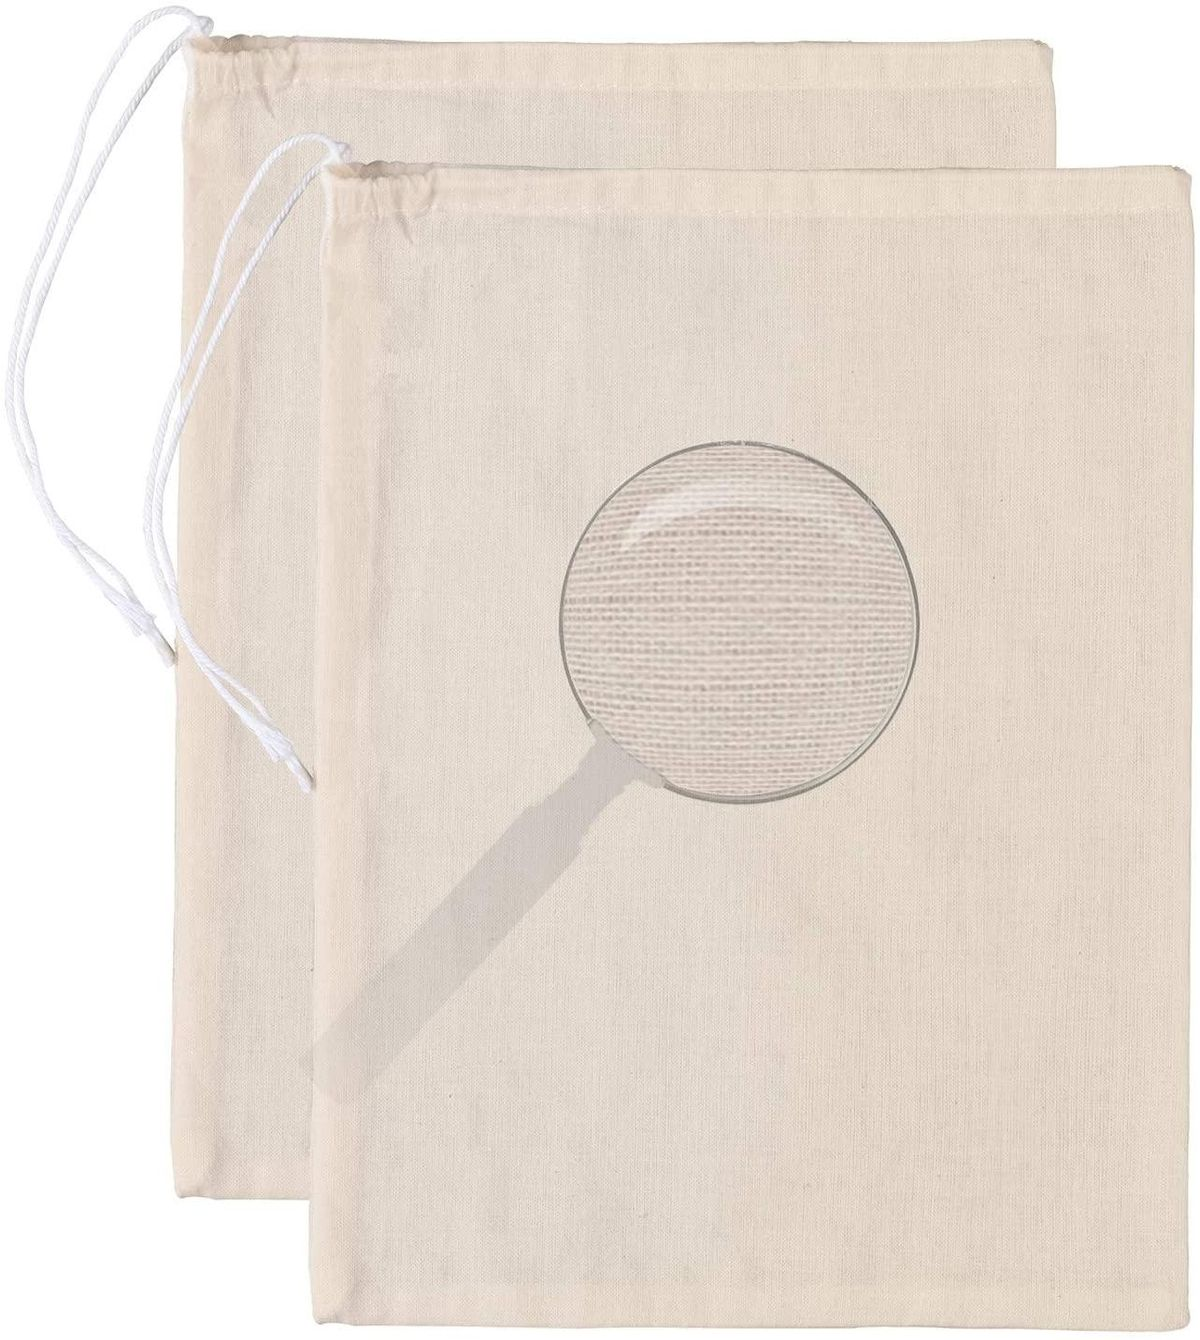 juyomox cotton cheesecloth bags